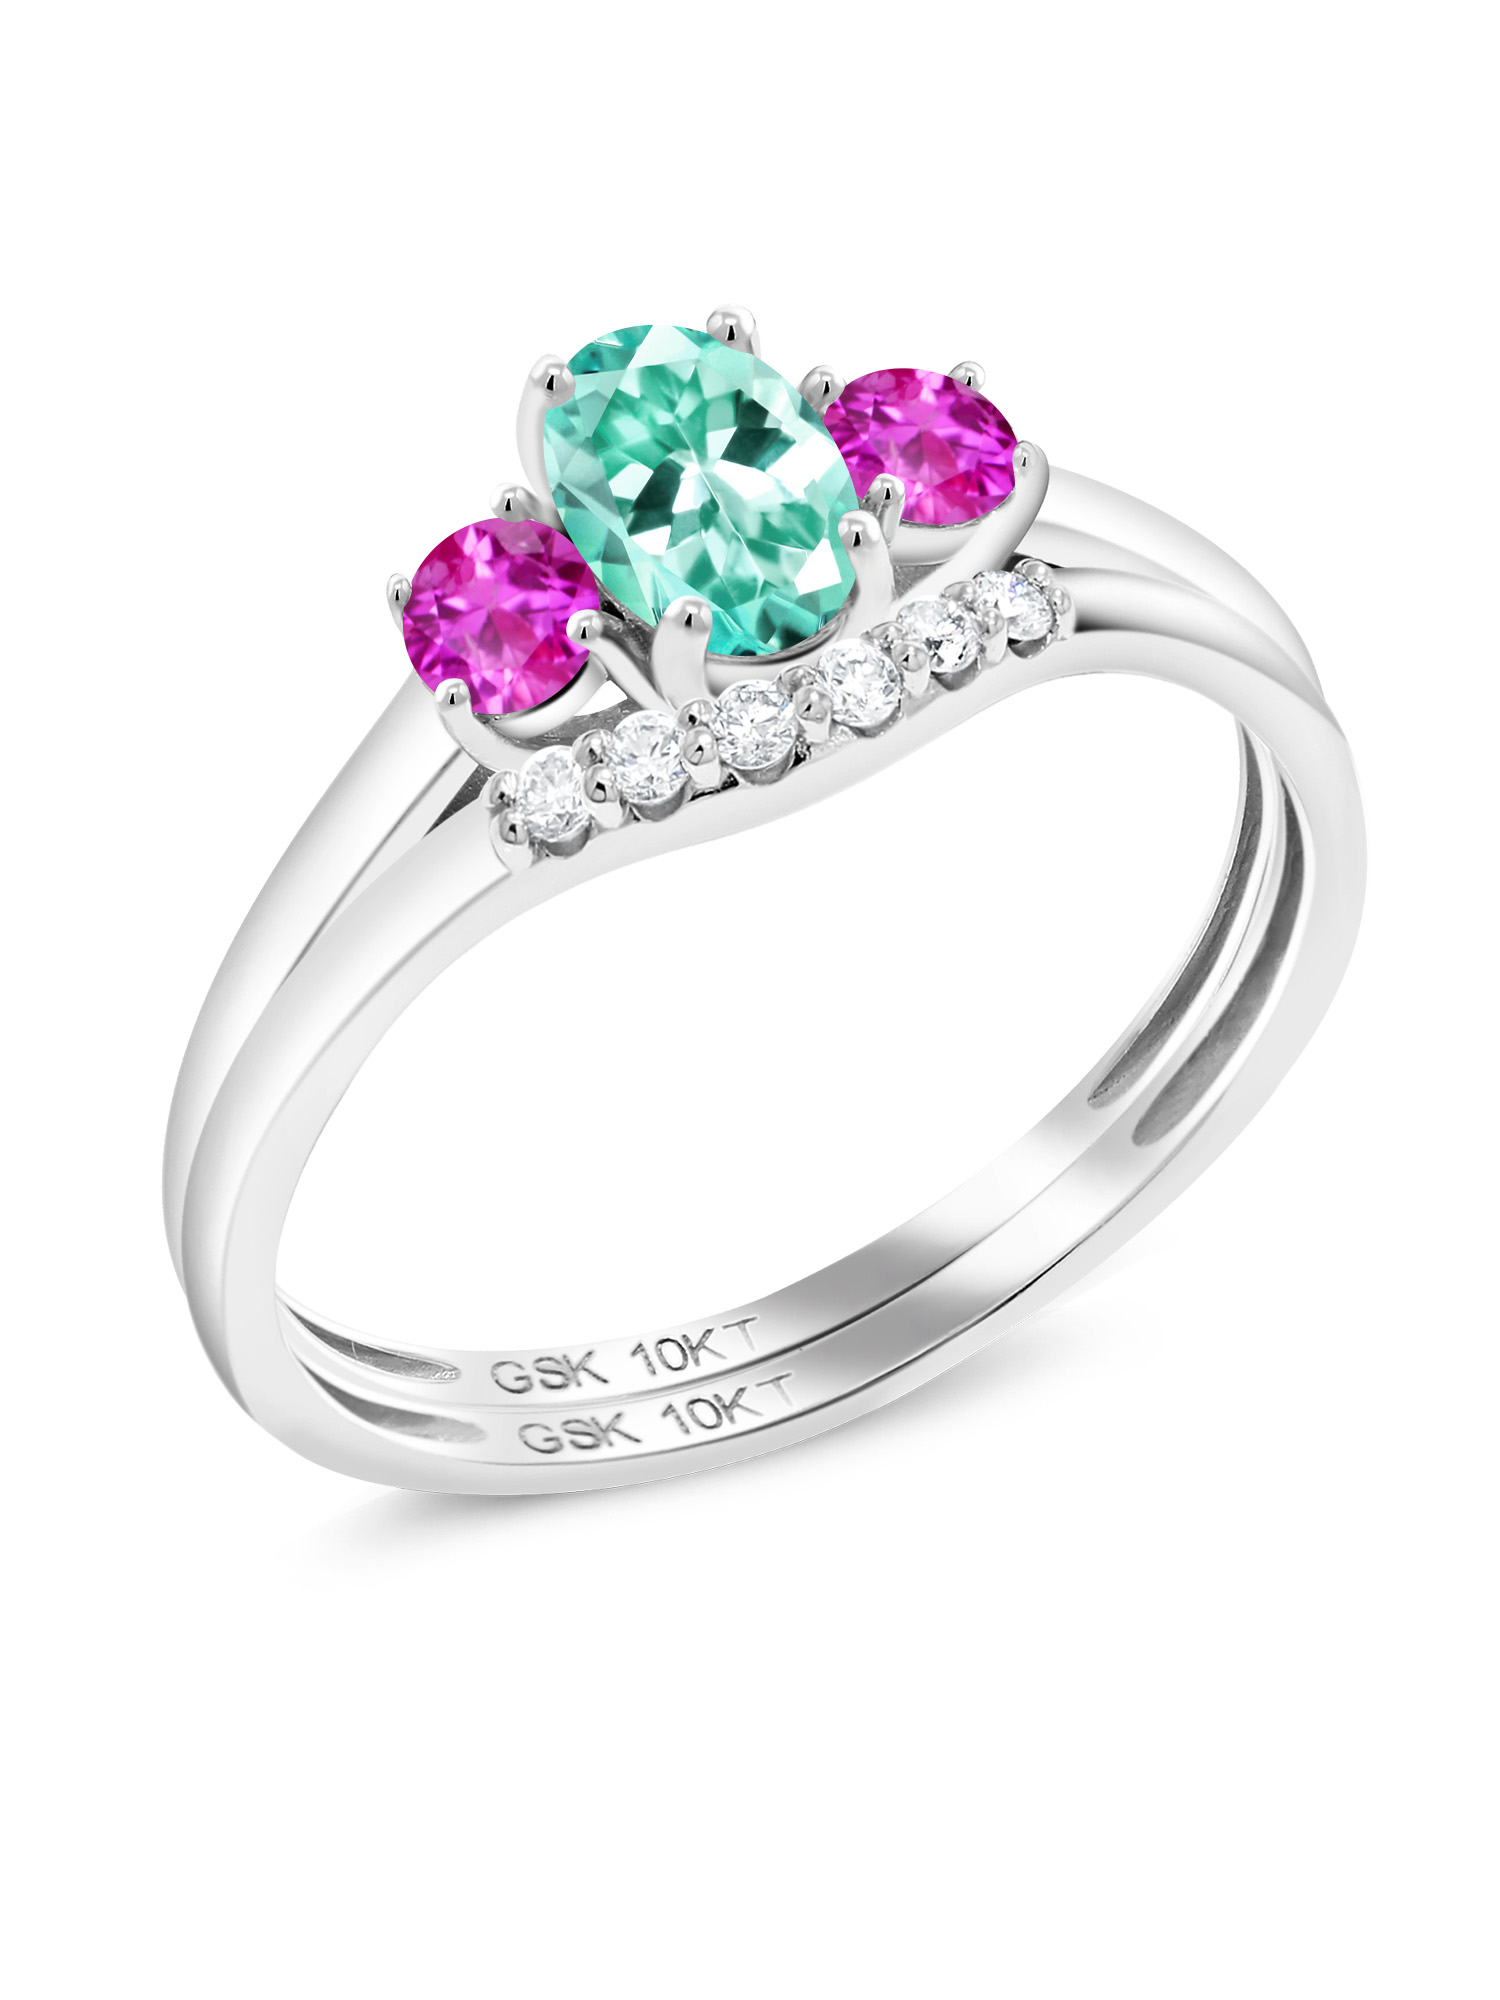 0.84 Ct Oval Blue Apatite Pink Sapphire 10K White Gold Lab Grown Diamond Ring by